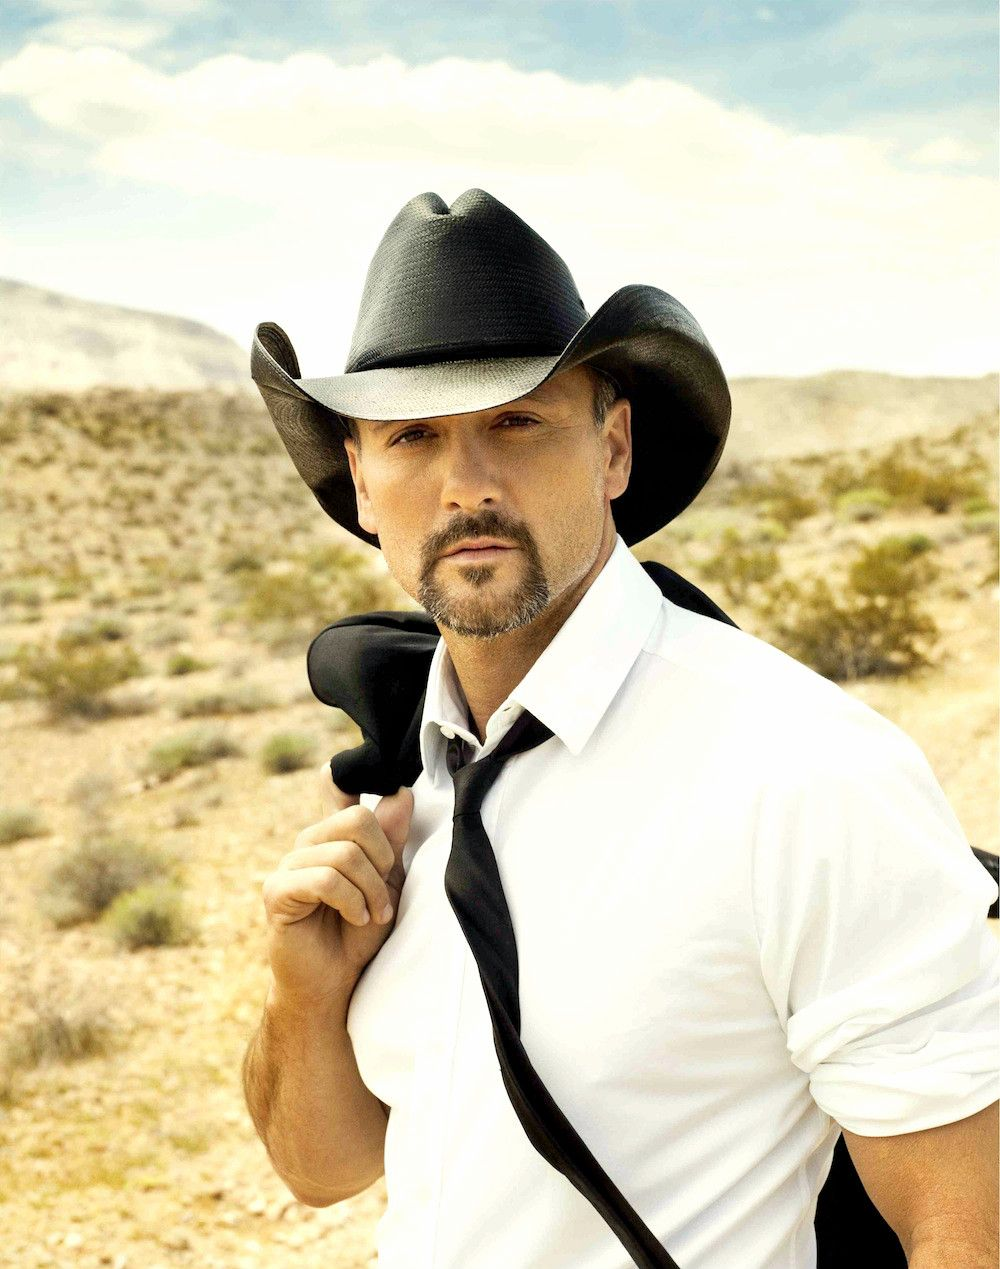 Where can you find country music online?